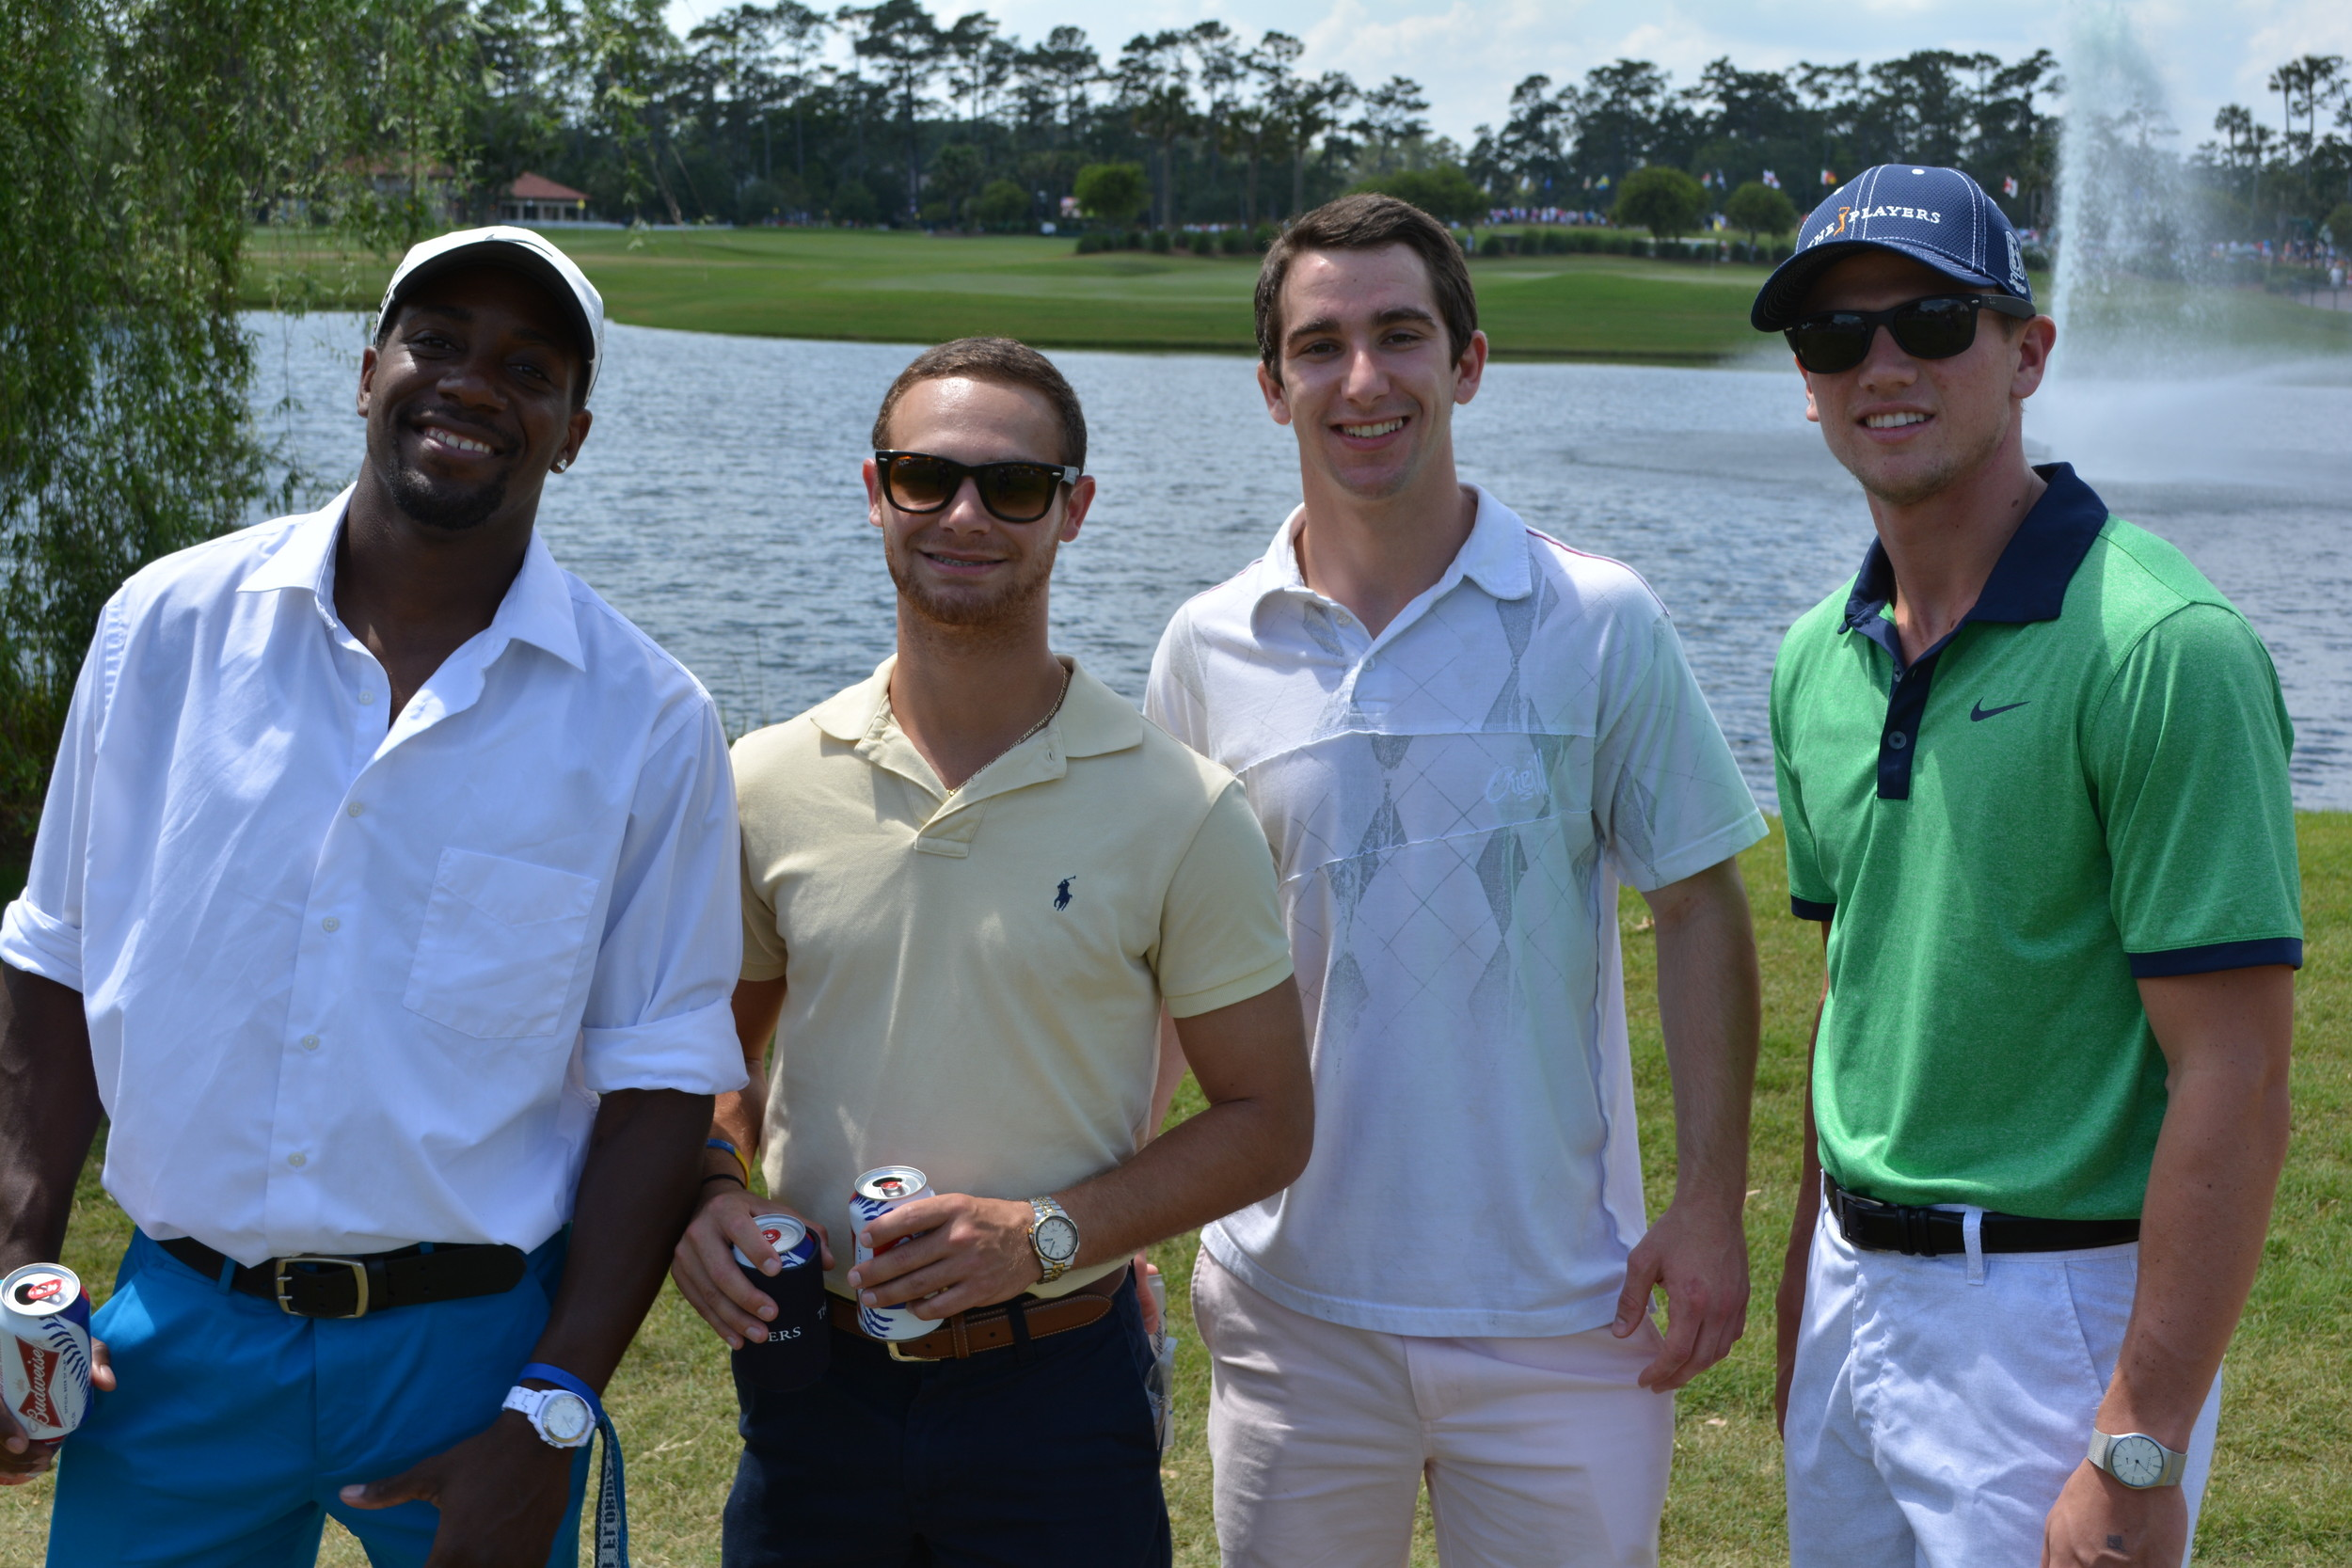 Brandon Weinstein, David Washington, Mike Aloise, Trevor Bland